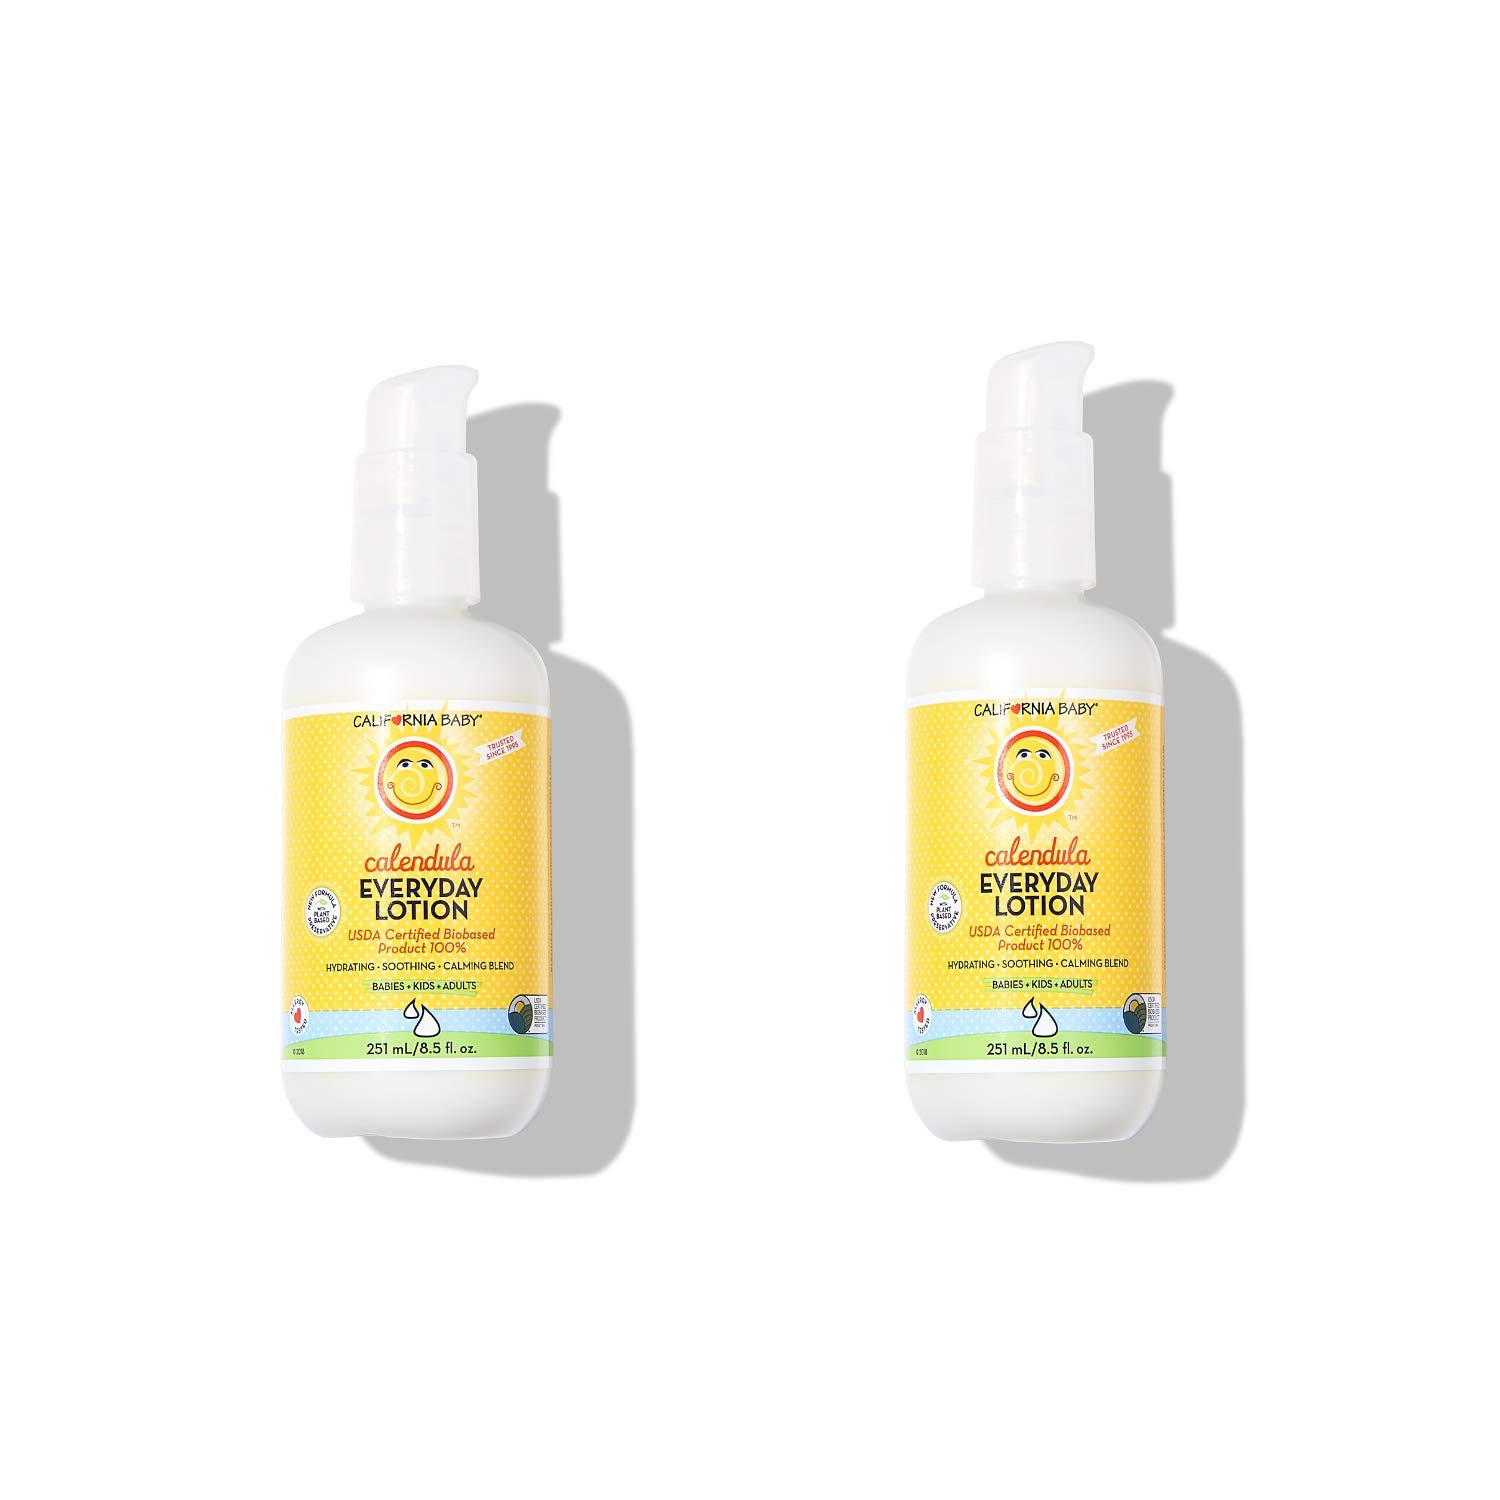 California Baby Calendula Everyday Lotion (8.5 Ounces) Moisturizer for Dry, Sensitive Skin | Post Bath and Diaper Changing | Non-Greasy, Fast-Absorbing Formula | 2 pack by California Baby